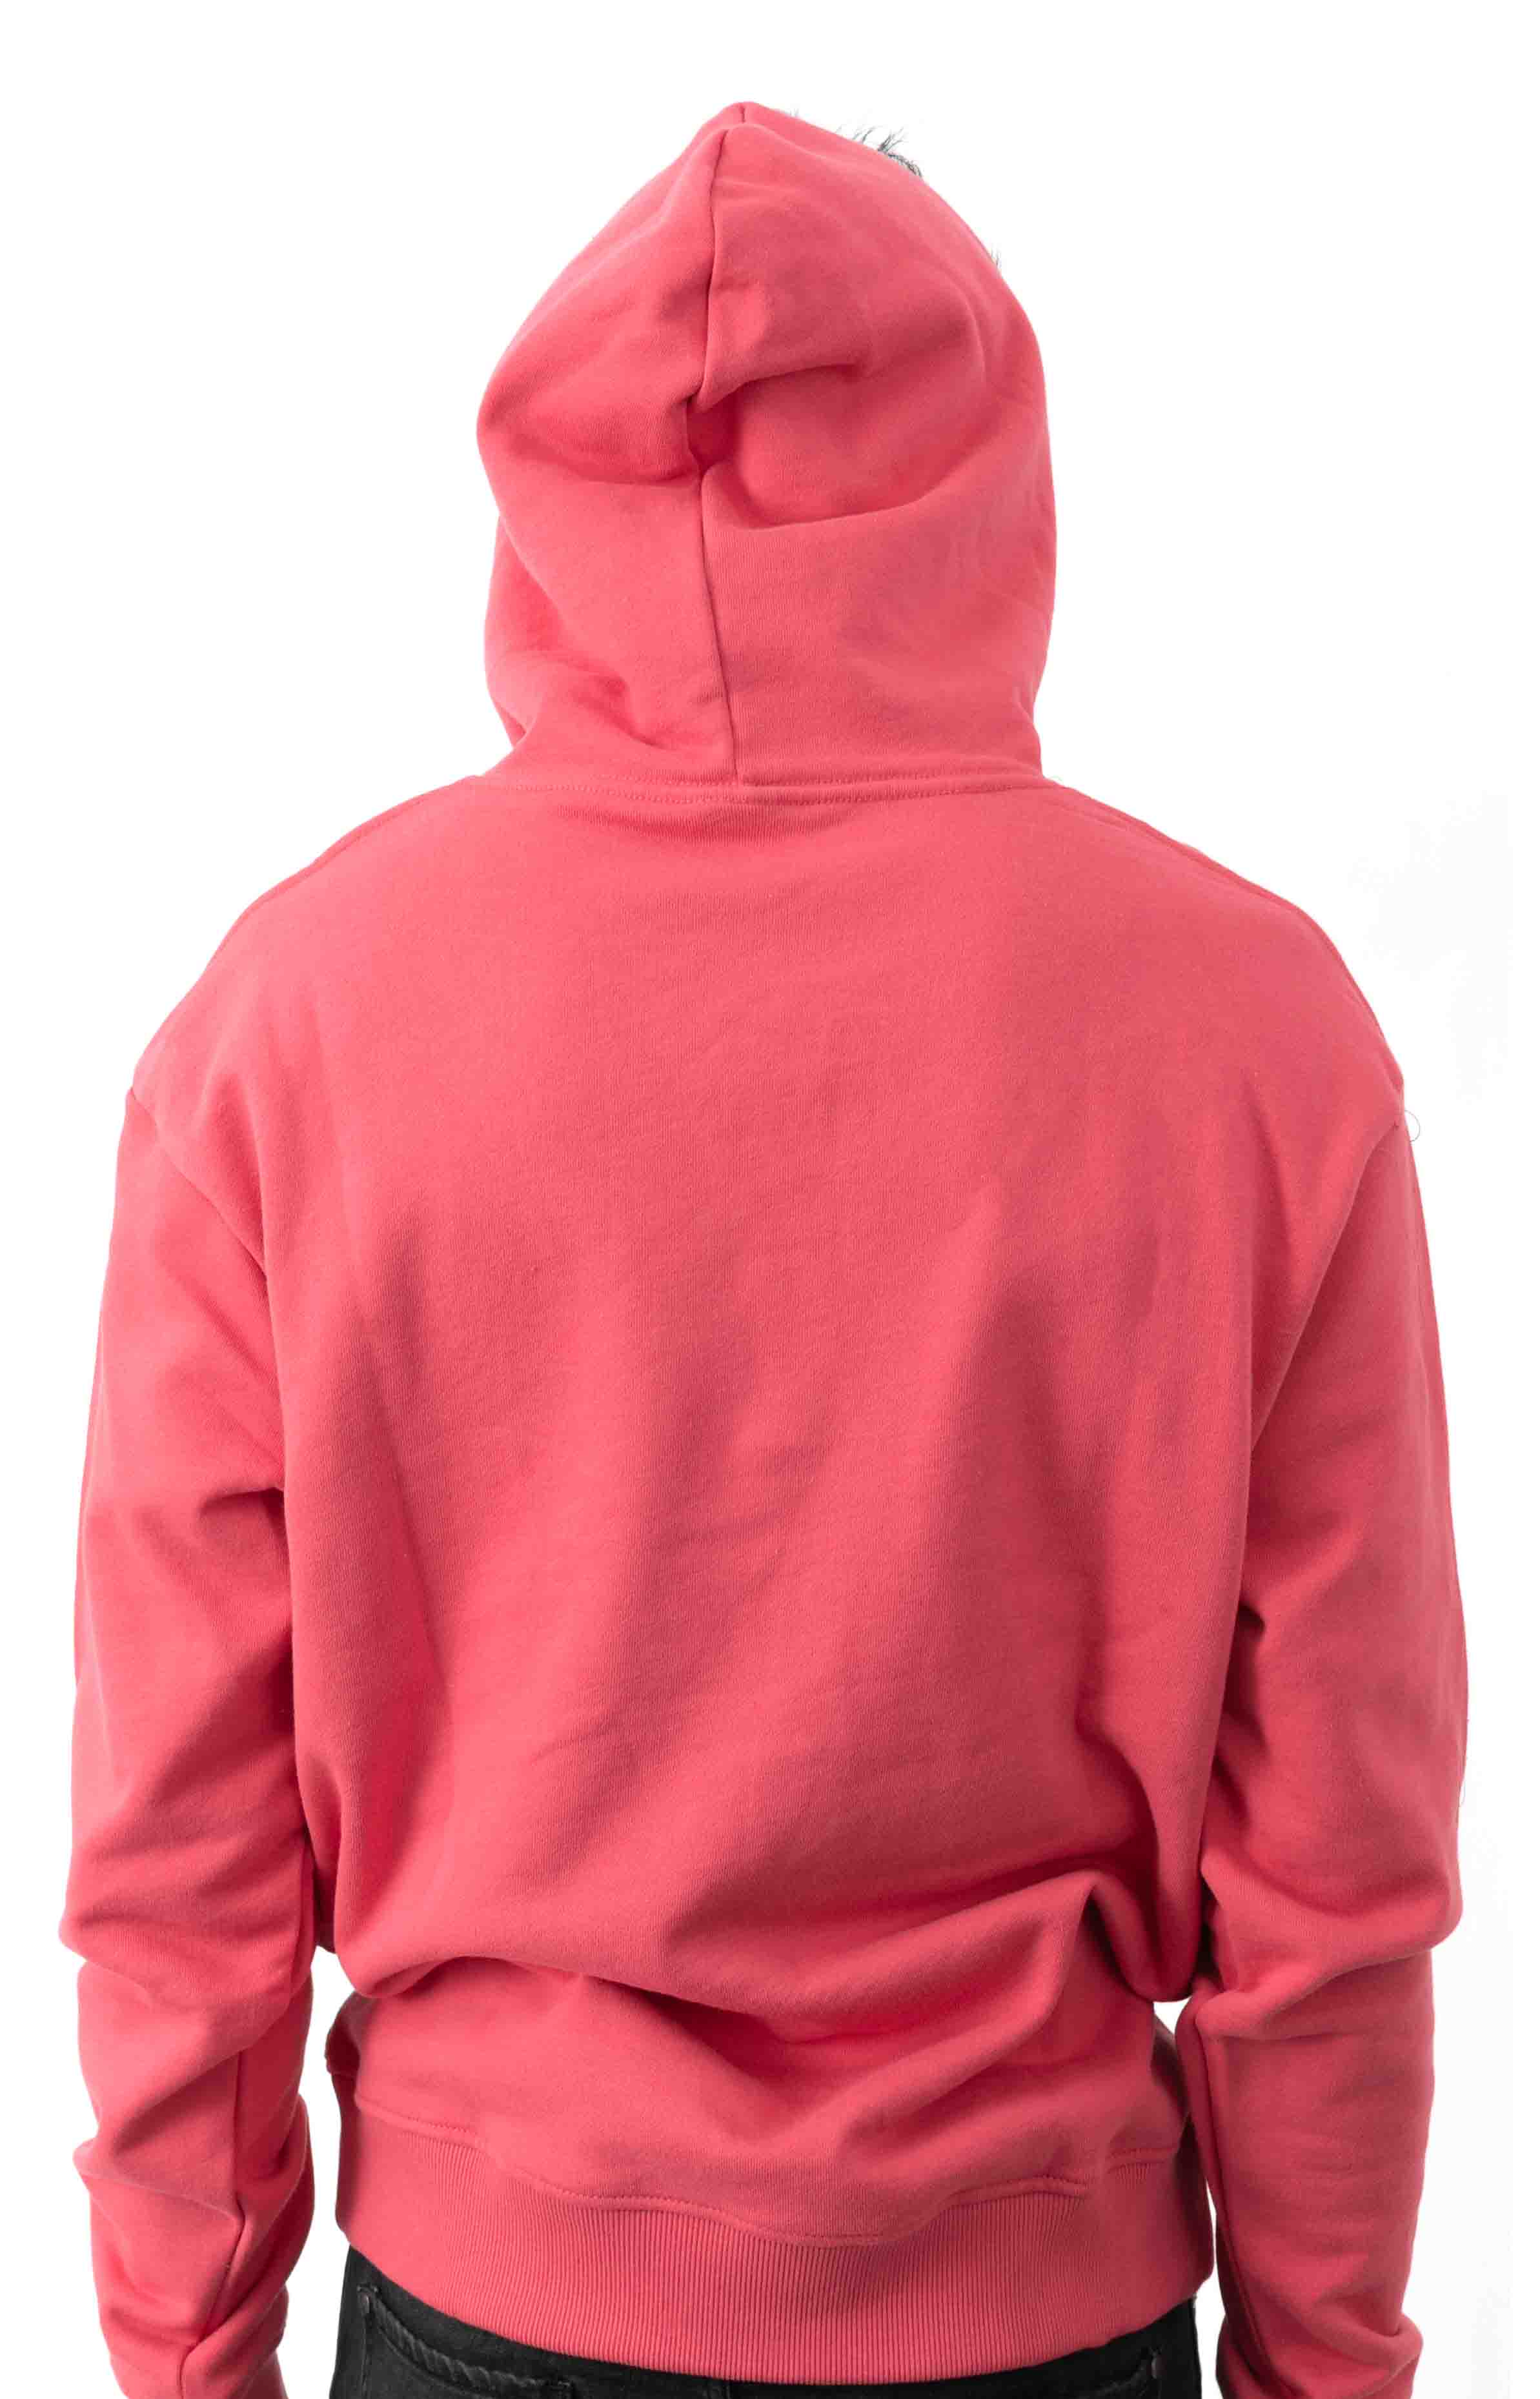 Dog Pullover Hoodie - Claret Red  3